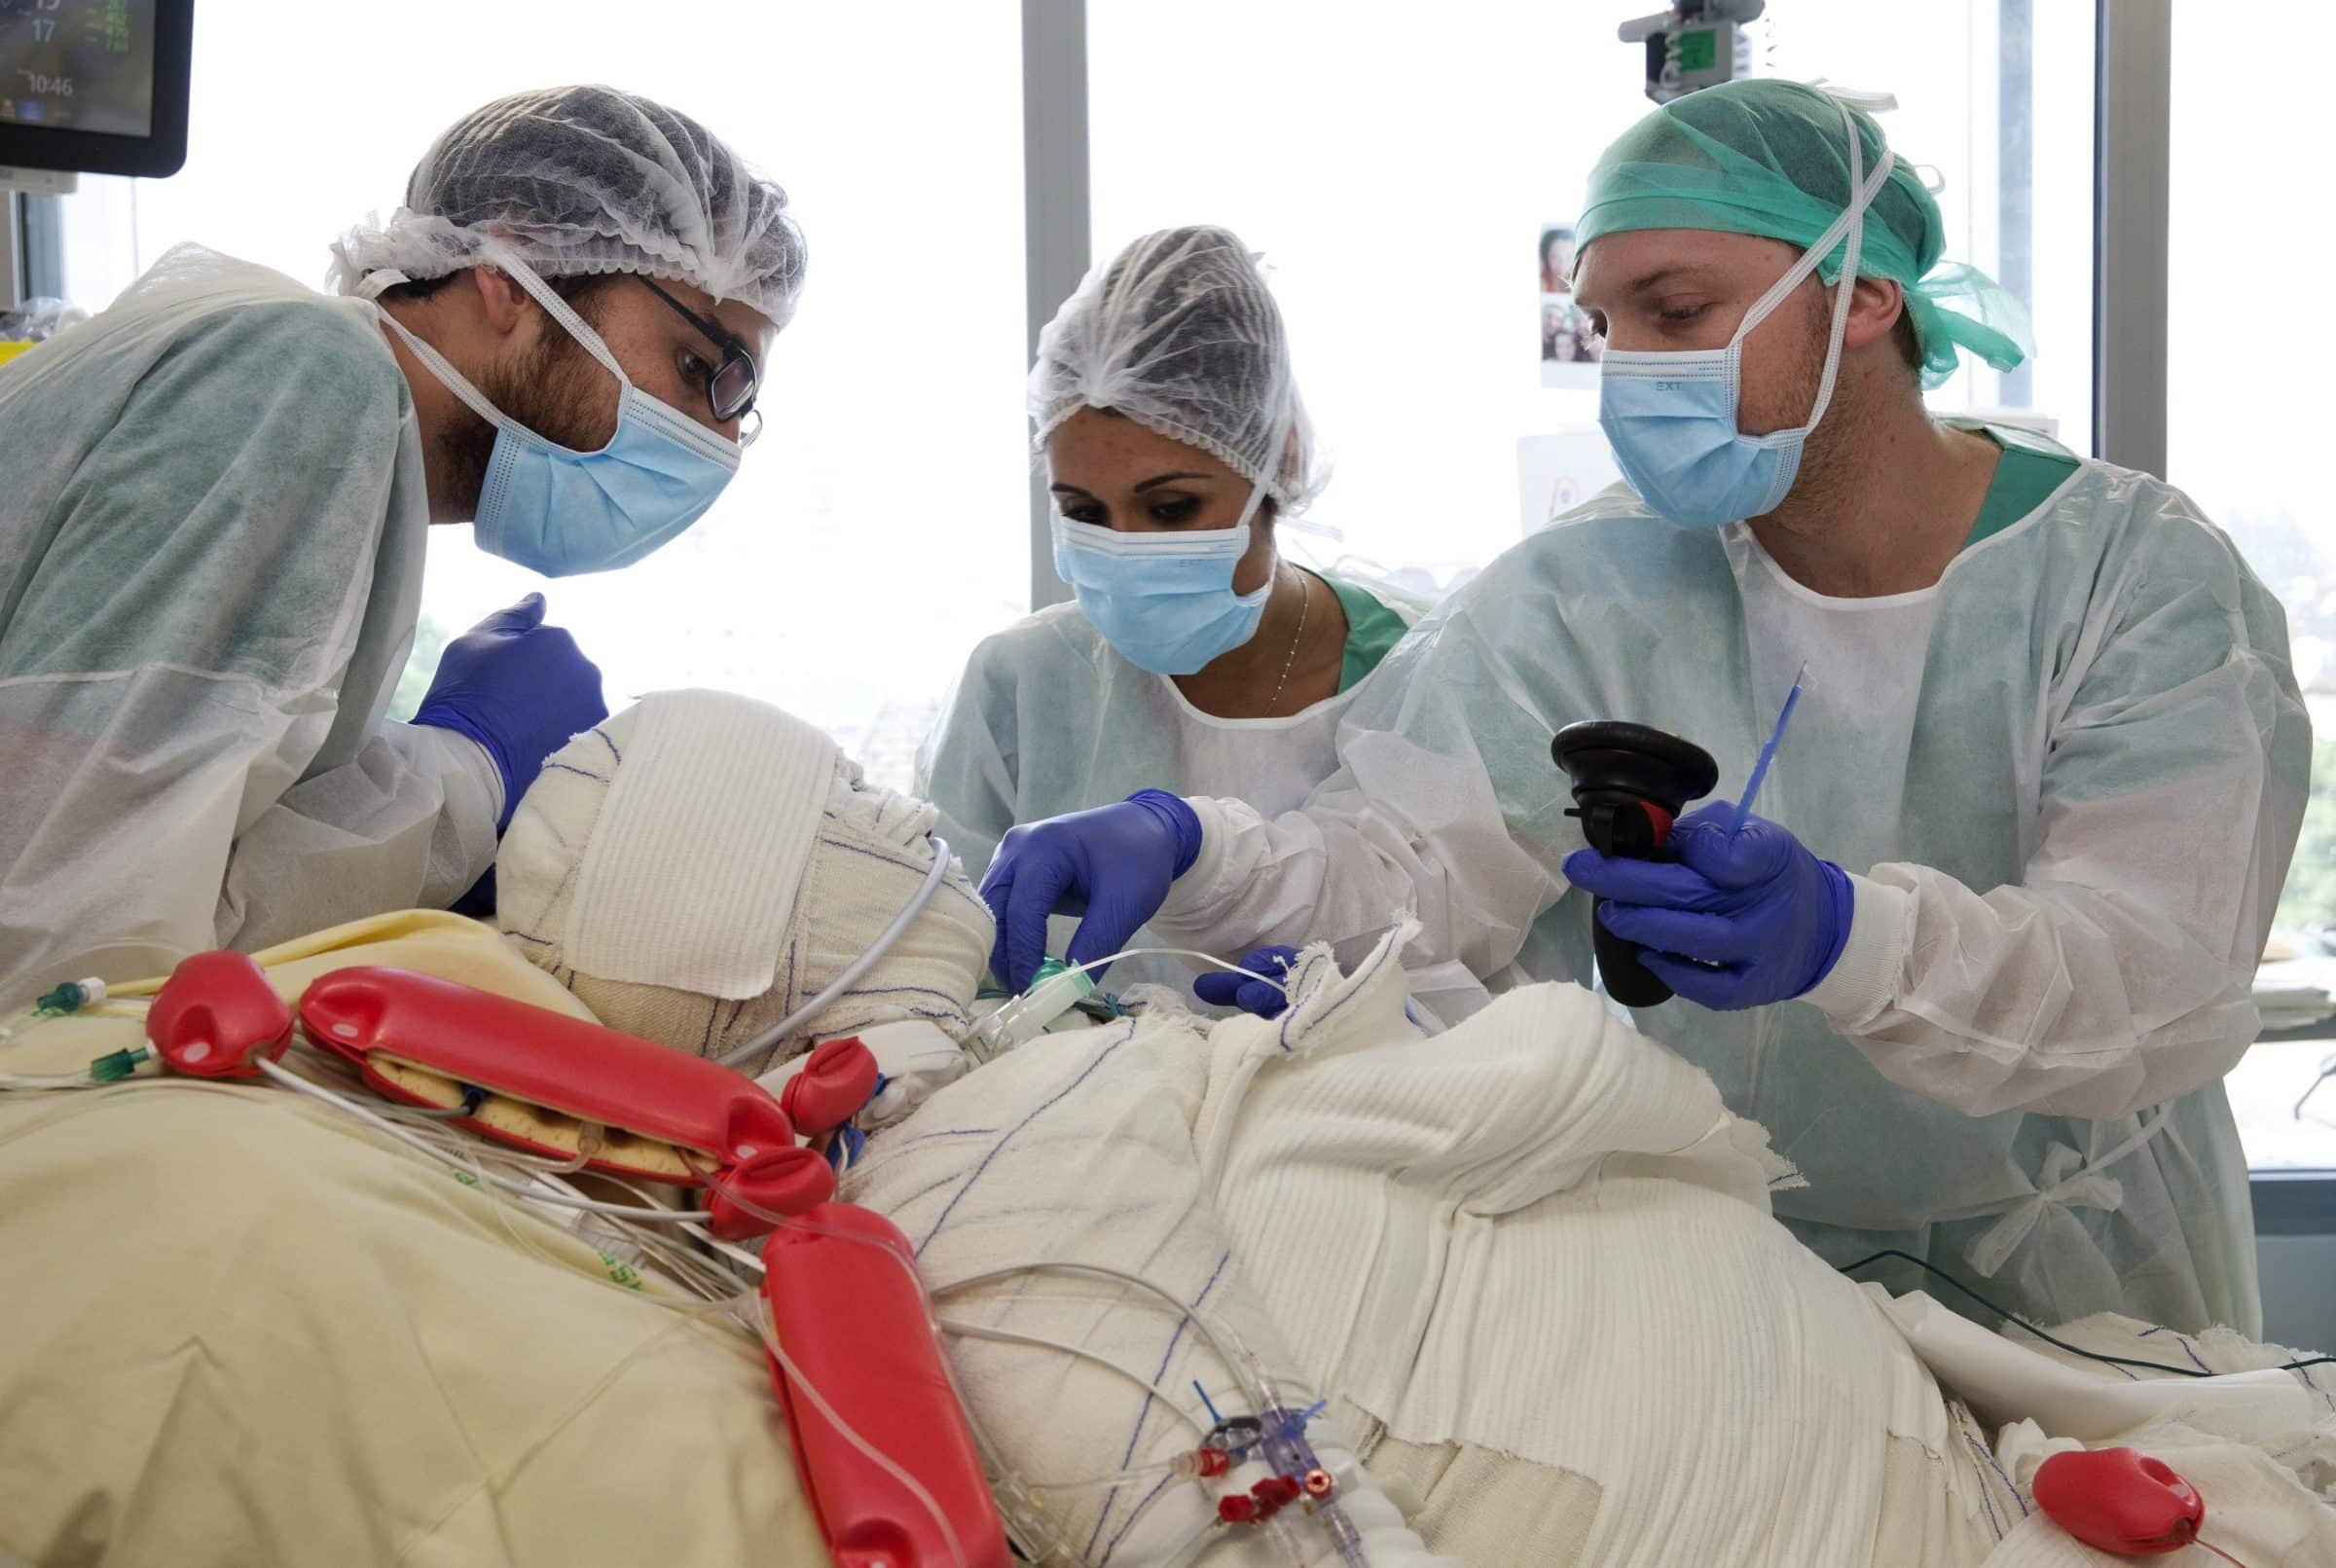 anesthesiste infirmiere Intensifs, un infirmier circulant et un technicien de maintenance médicale assembly-weuorg assembly-weuorg there were six staff on each team, including a.